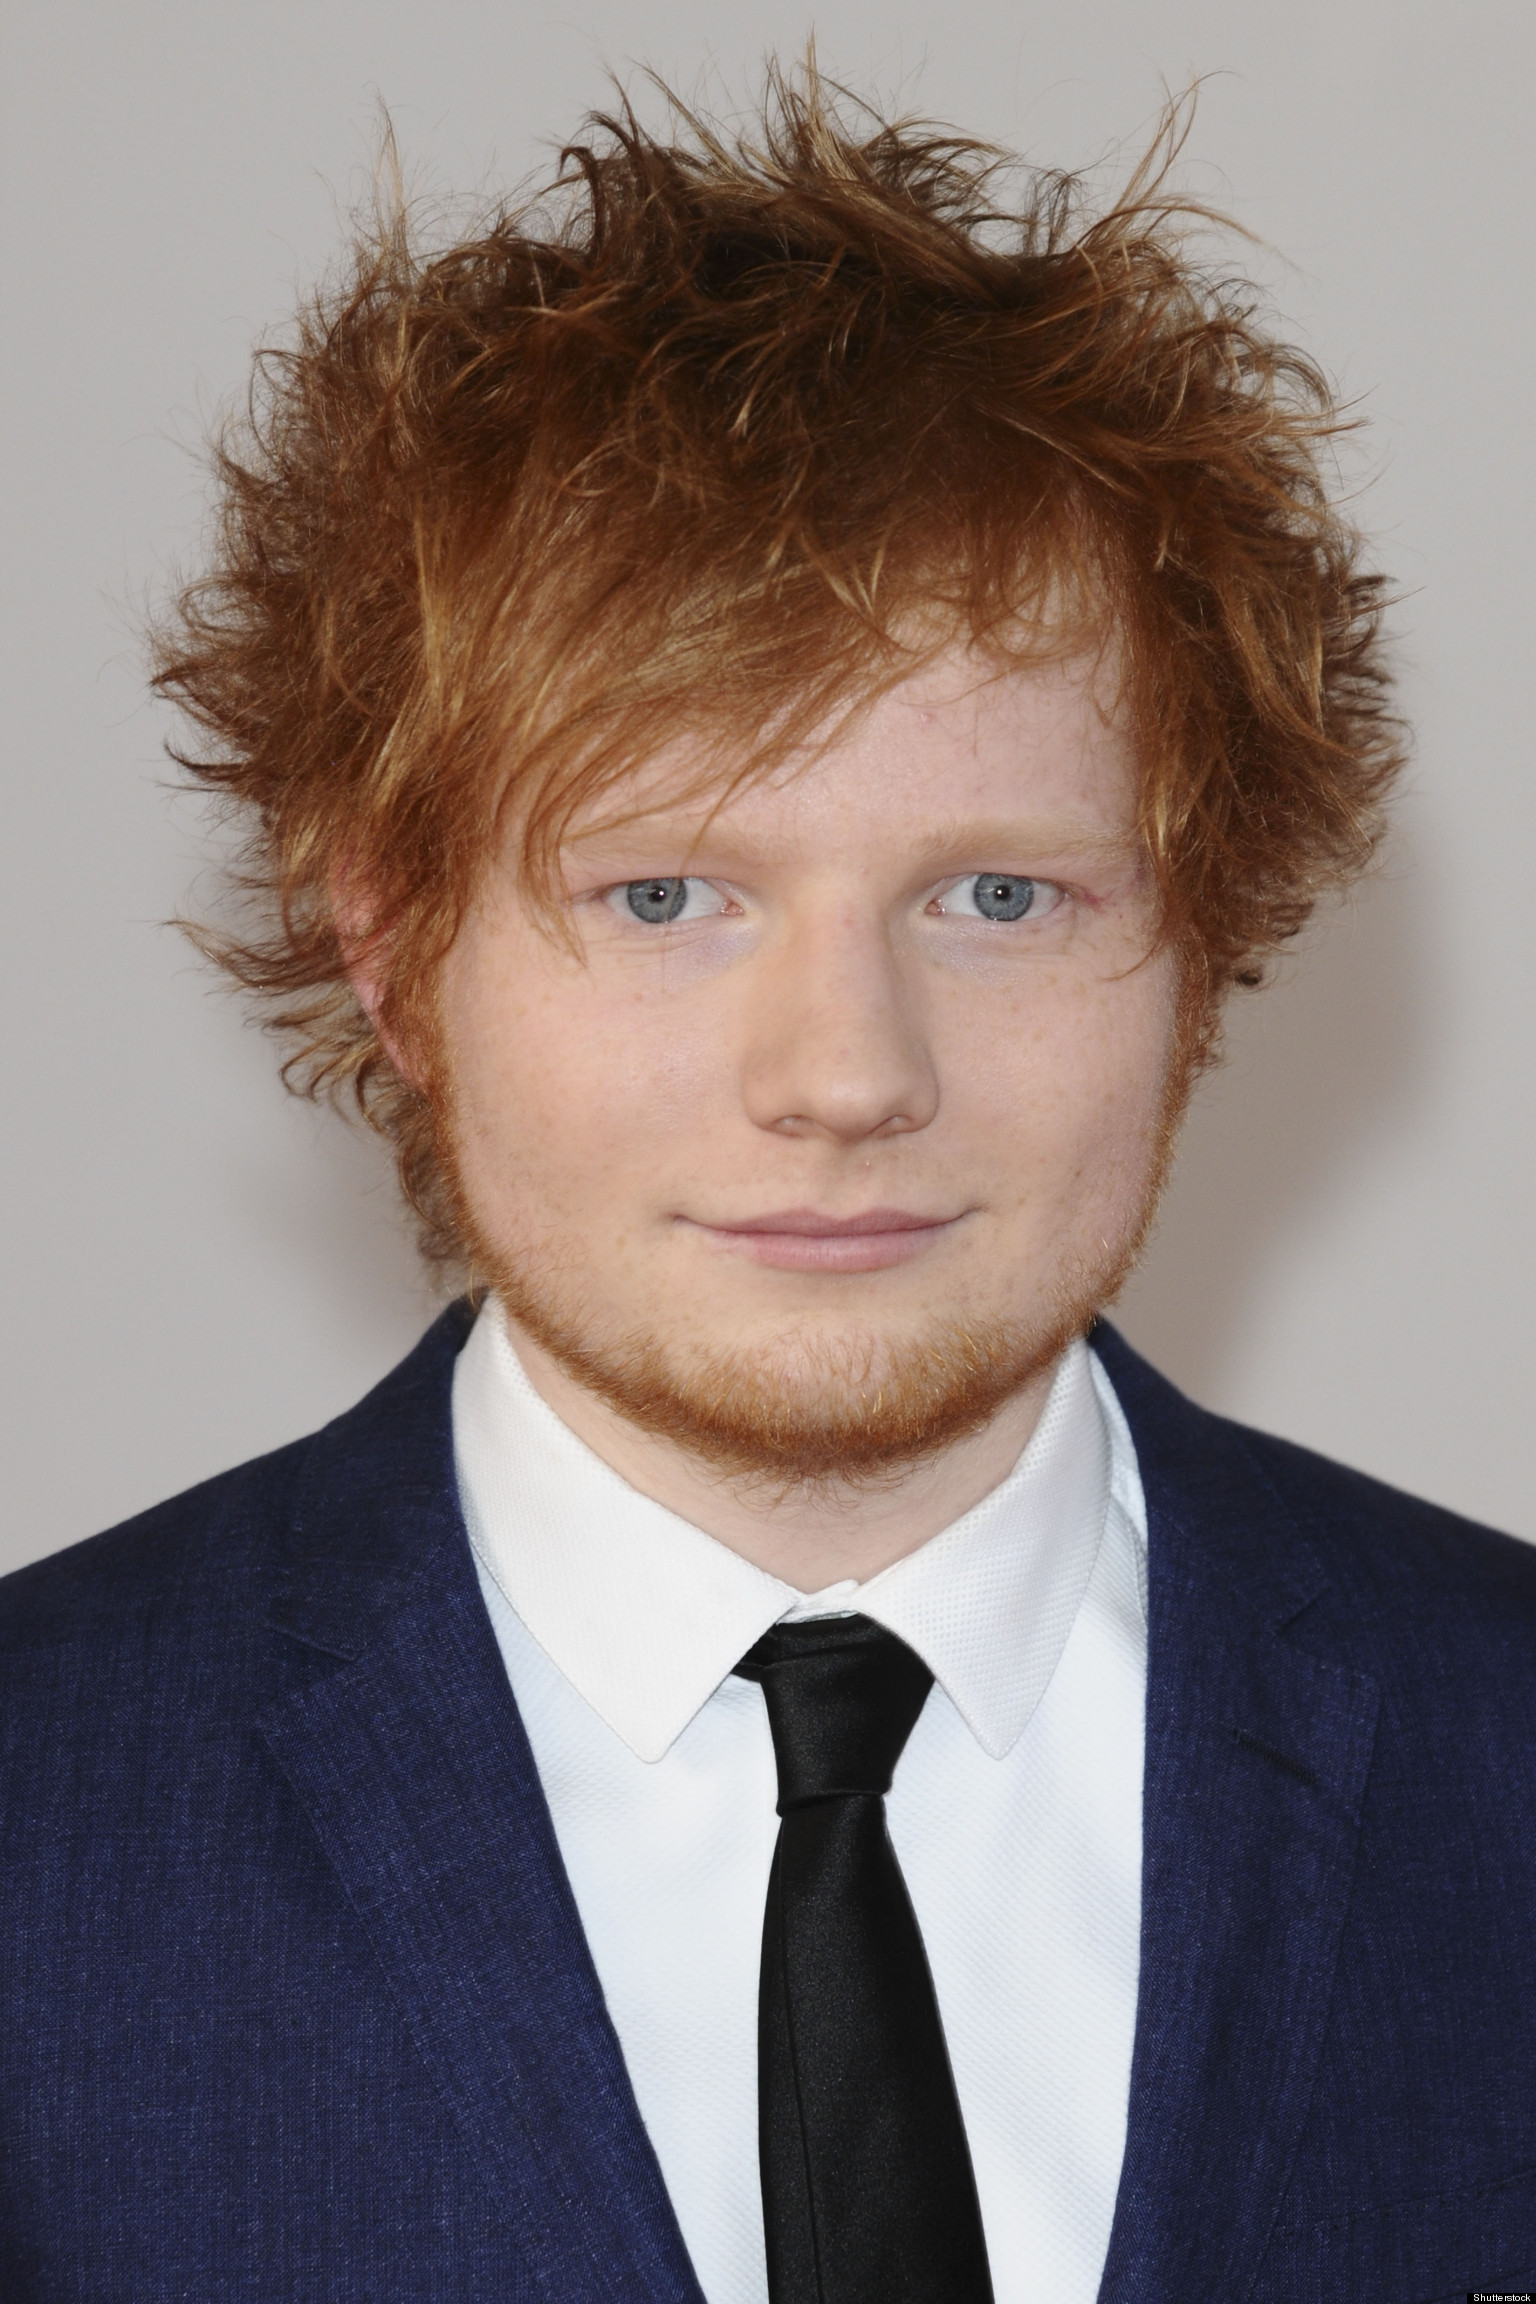 Ed Sheeran: Is He Selling Out? | HuffPost UK